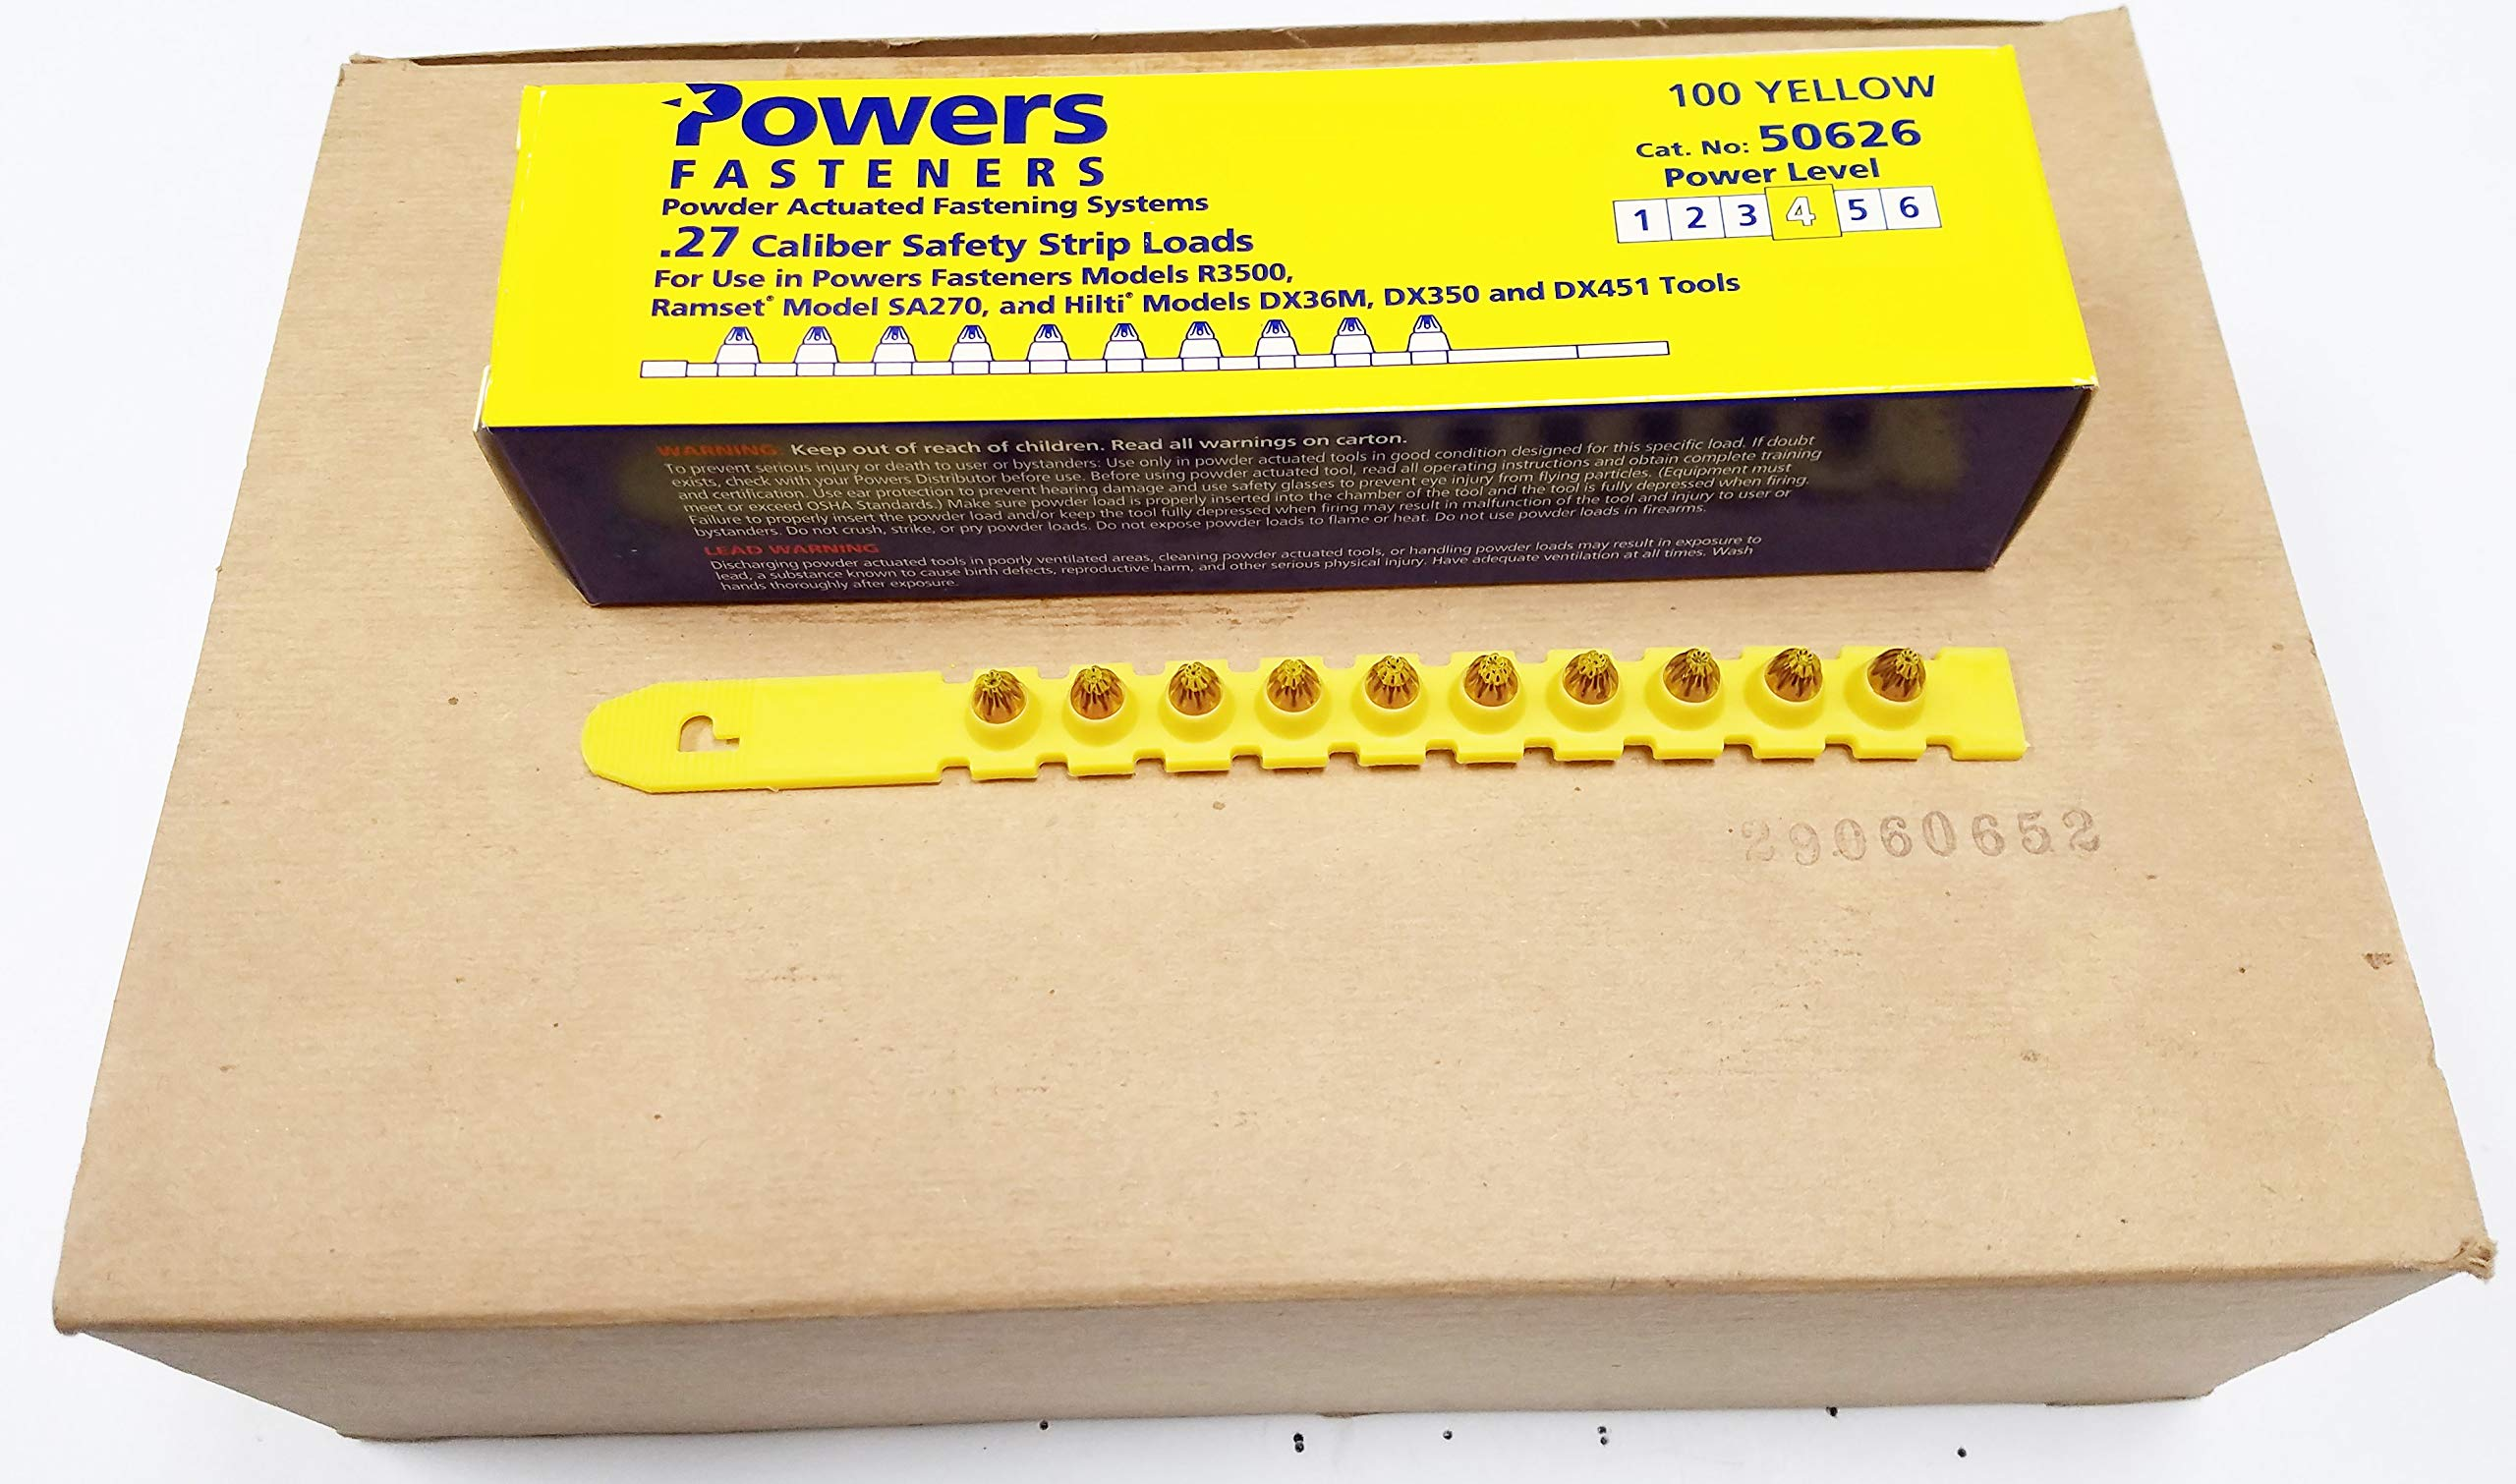 Powers Fasteners No.50626-1000 (Power Level 4) .27 Caliber Strip Loads-Yellow, 1,000 Loads, Made in USA